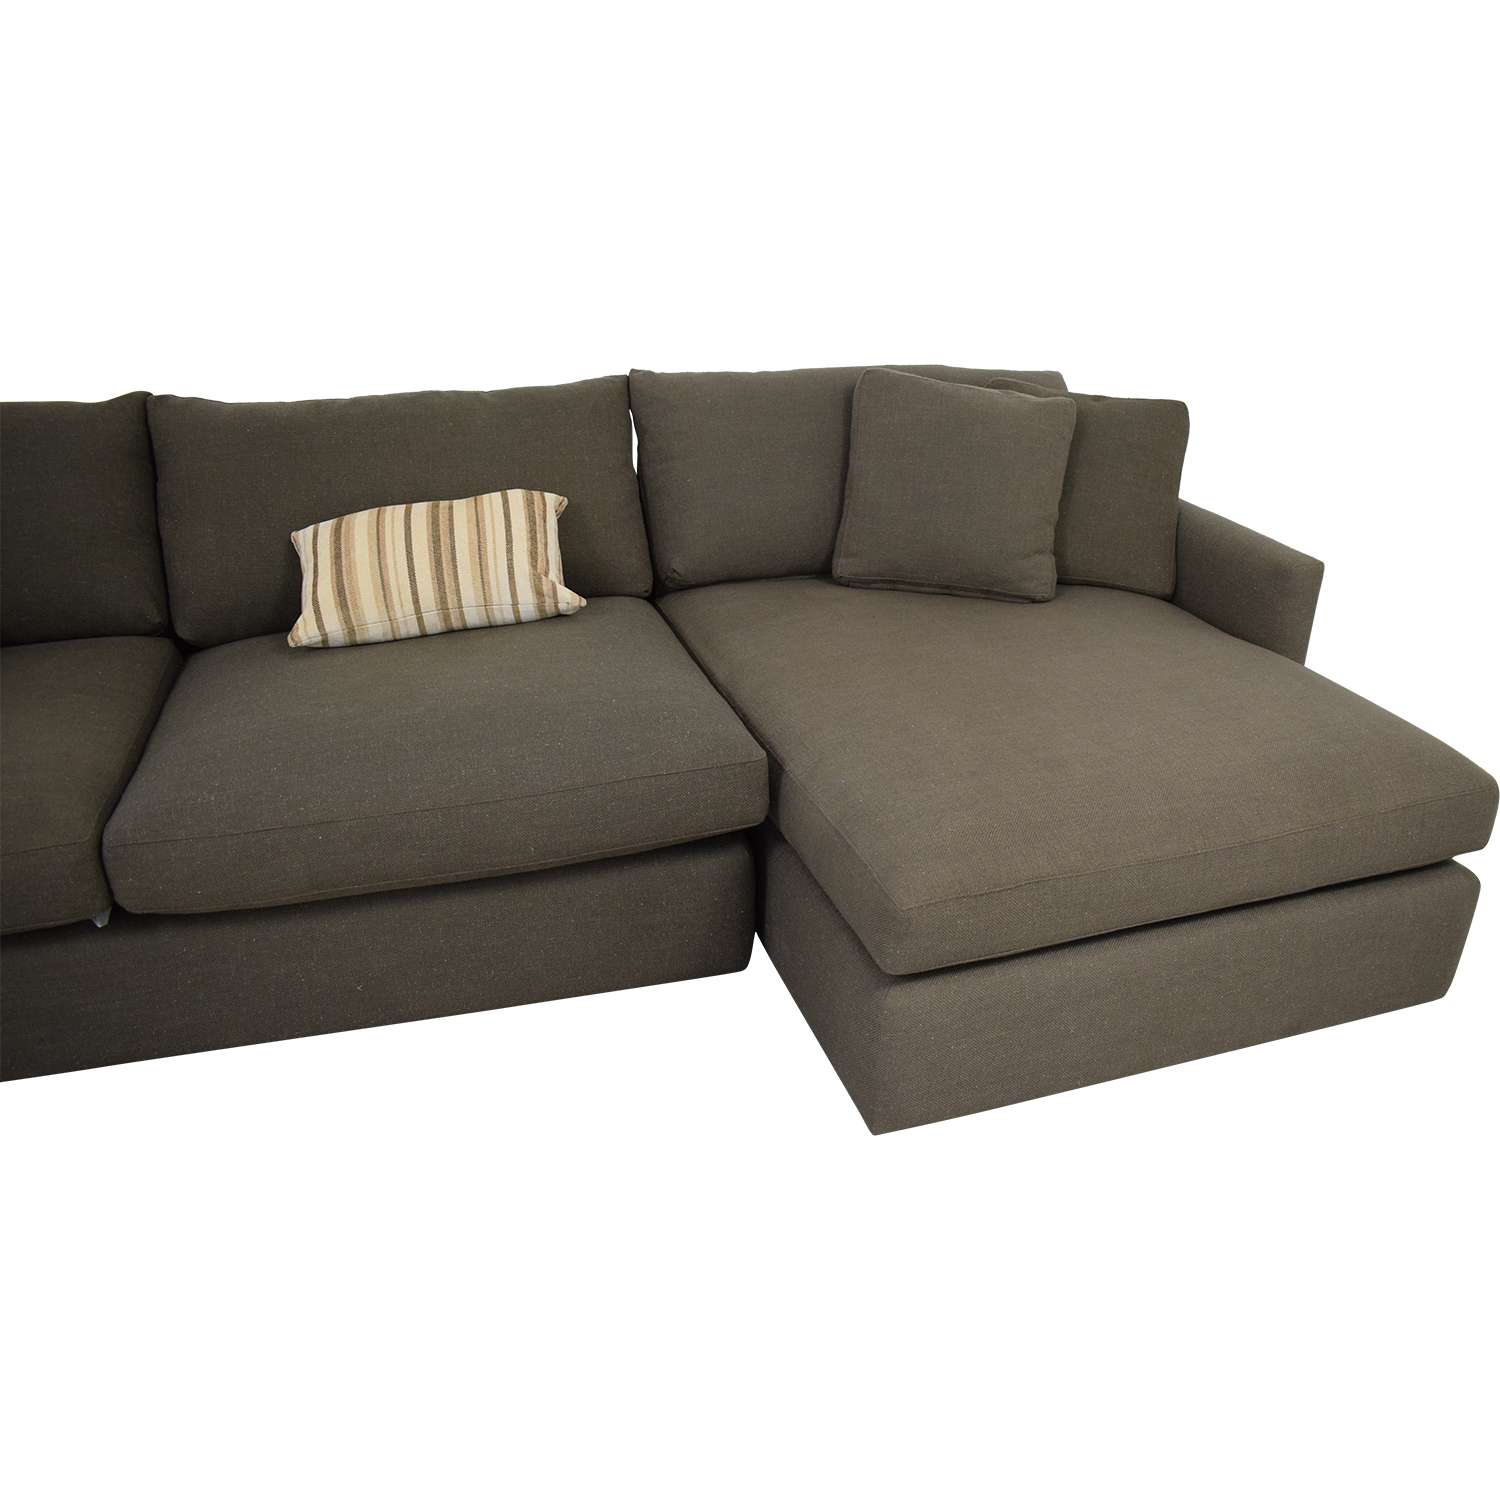 Crate & Barrel Crate & Barrel Two Piece Chaise Sectional Sofa ma